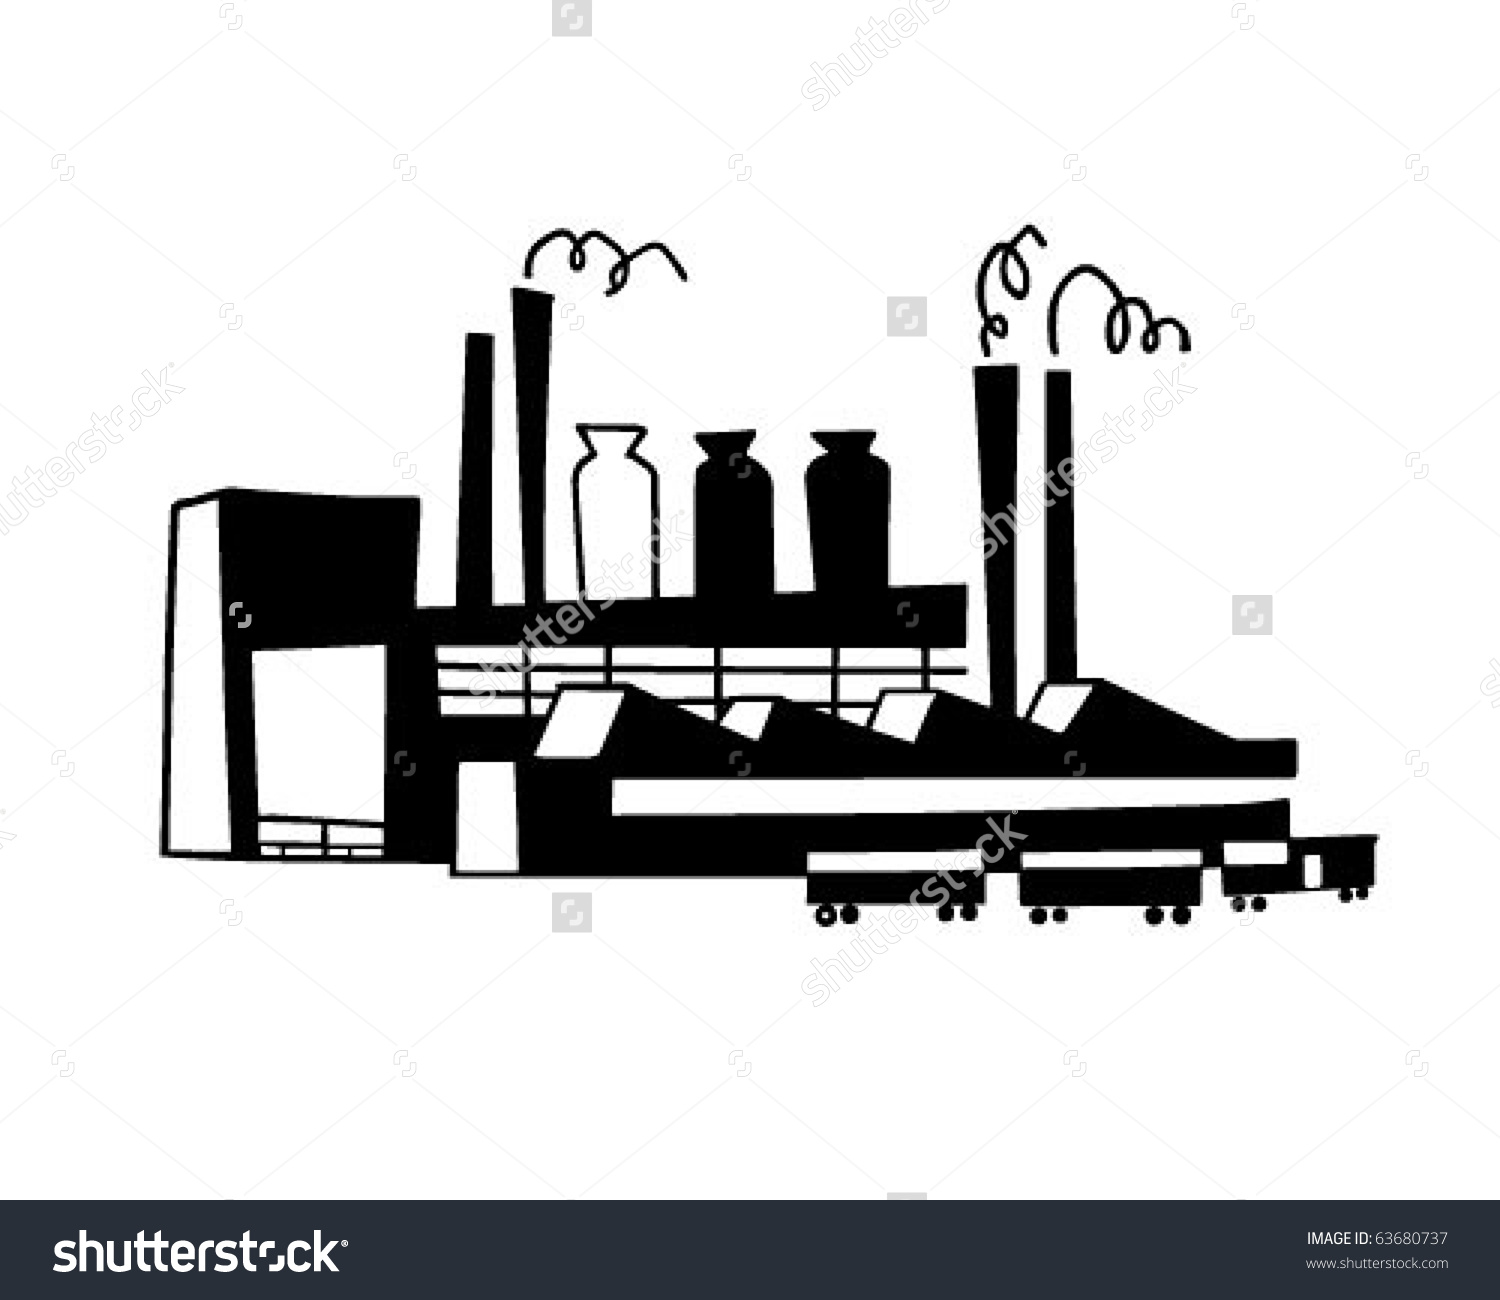 Industrial Plant Retro Clipart Illustration Stock Vector 63680737.